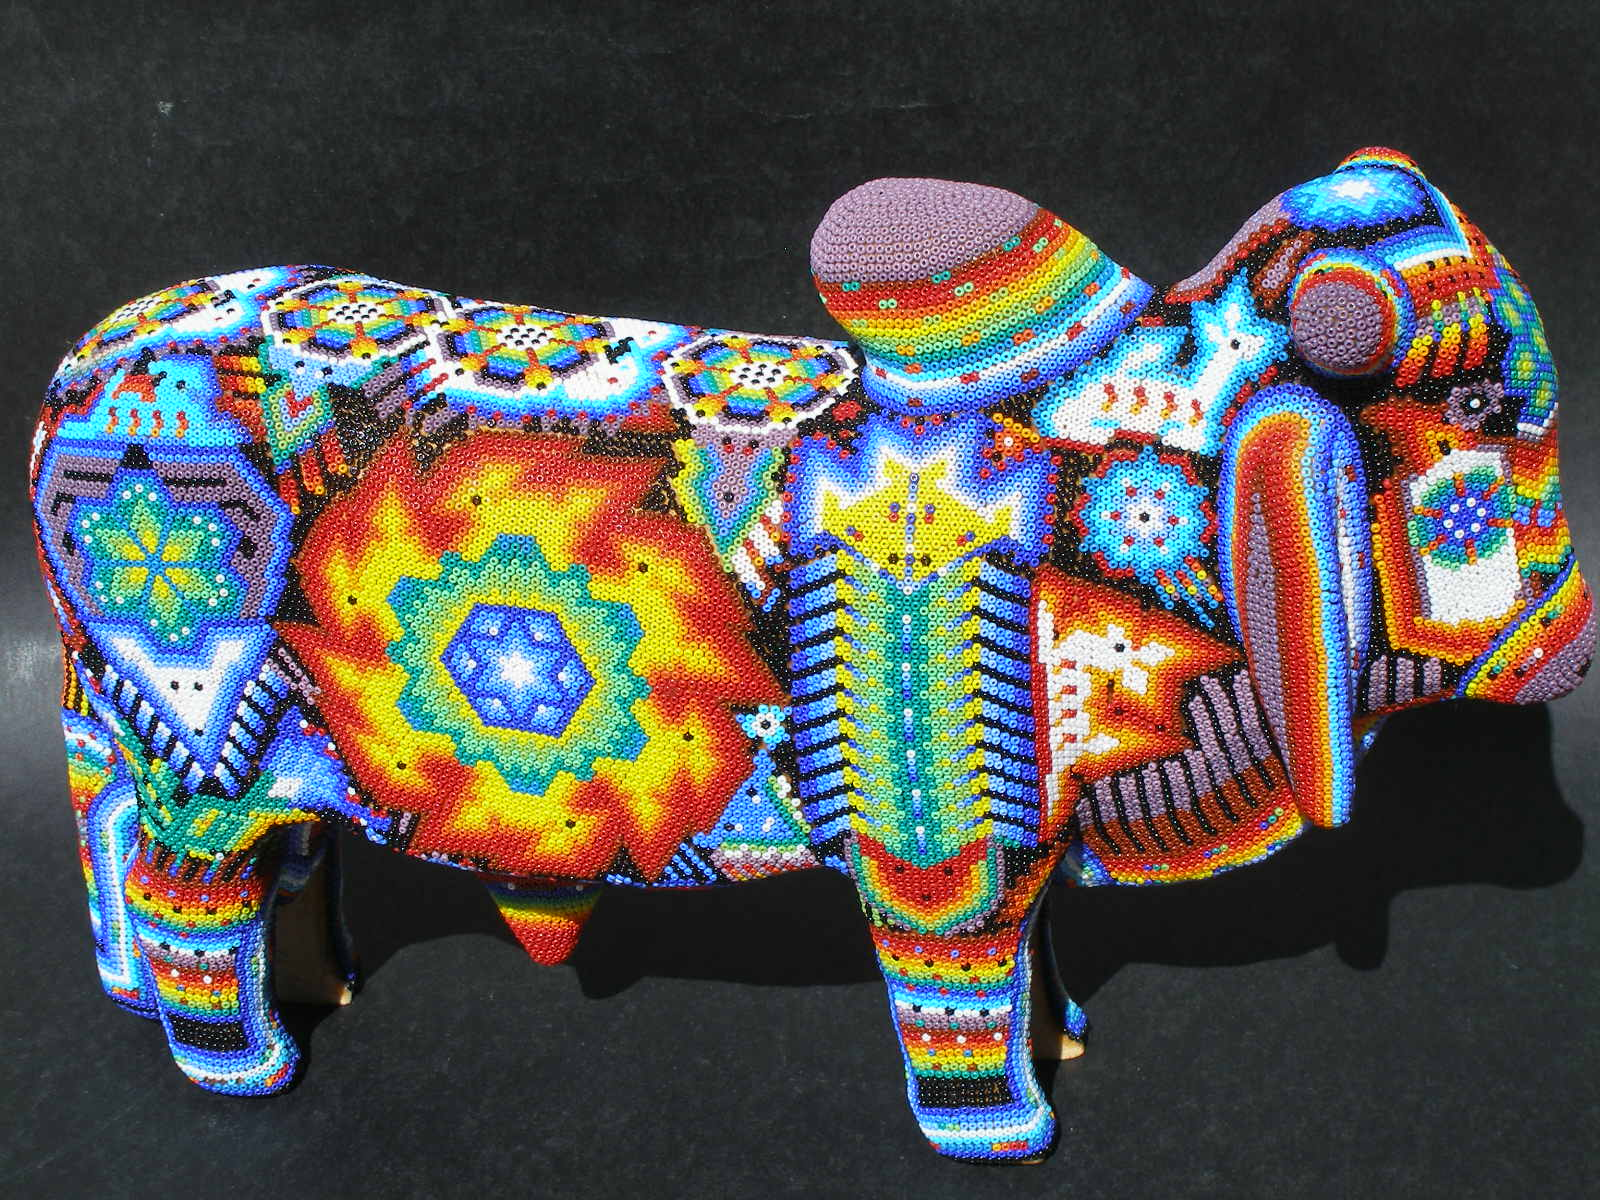 Easy crafts on a budget for kids 4 to 104 huichol arts for The art and craft